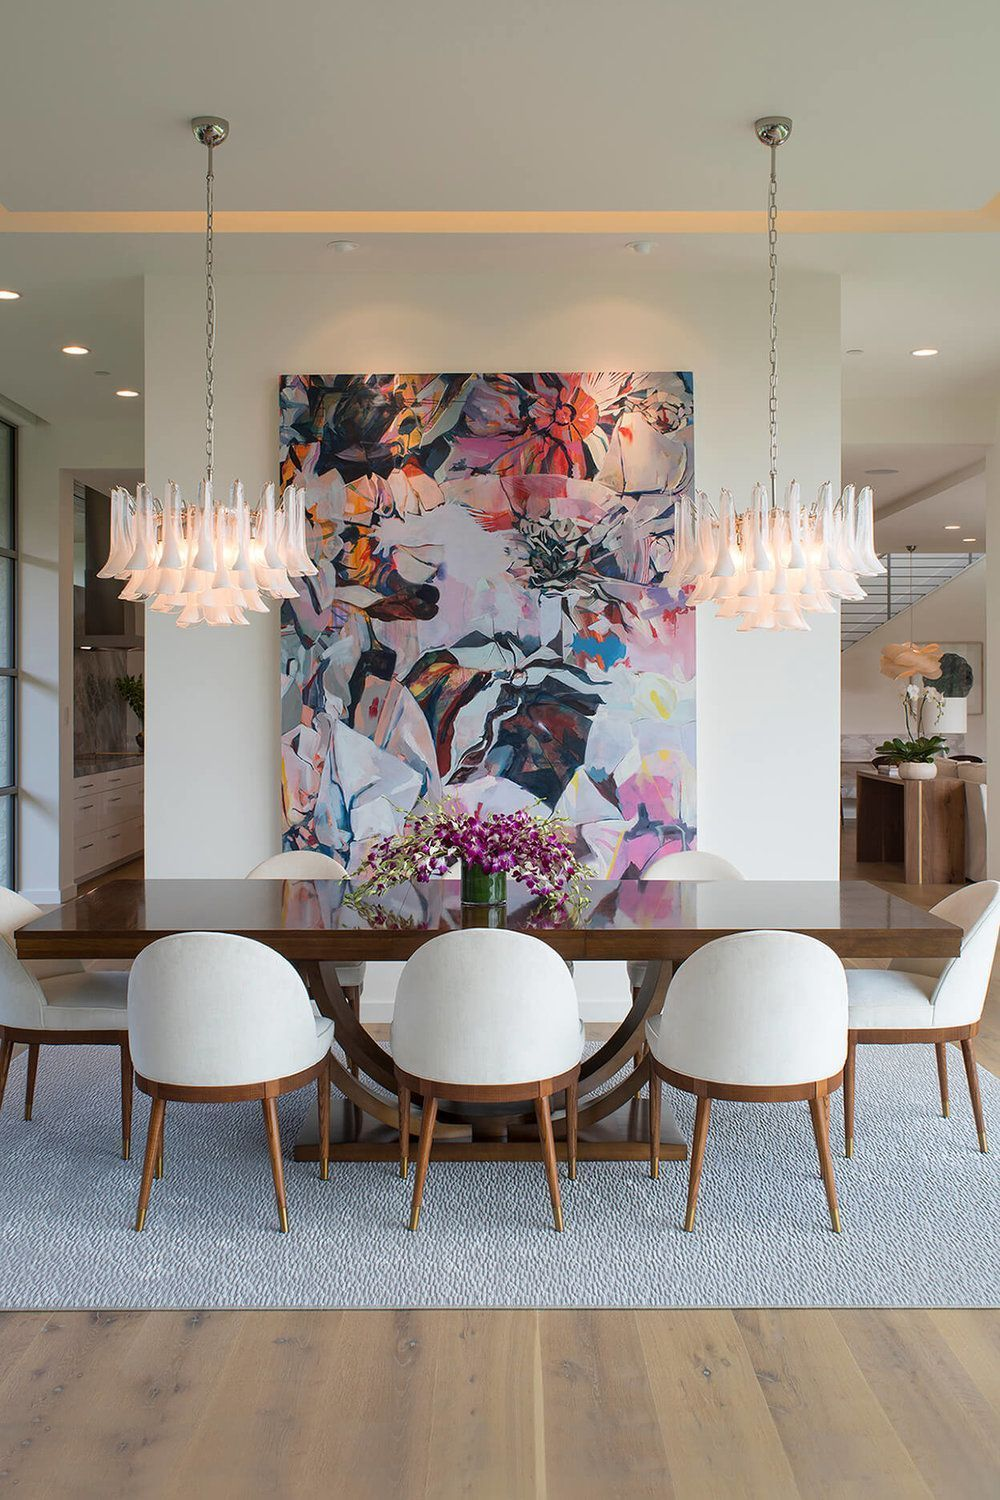 Catalogue Luxxu Modern Design And Living Find Out The Best Luxury Lightin Interior Design Dining Room Contemporary Dining Room Design Open Dining Room